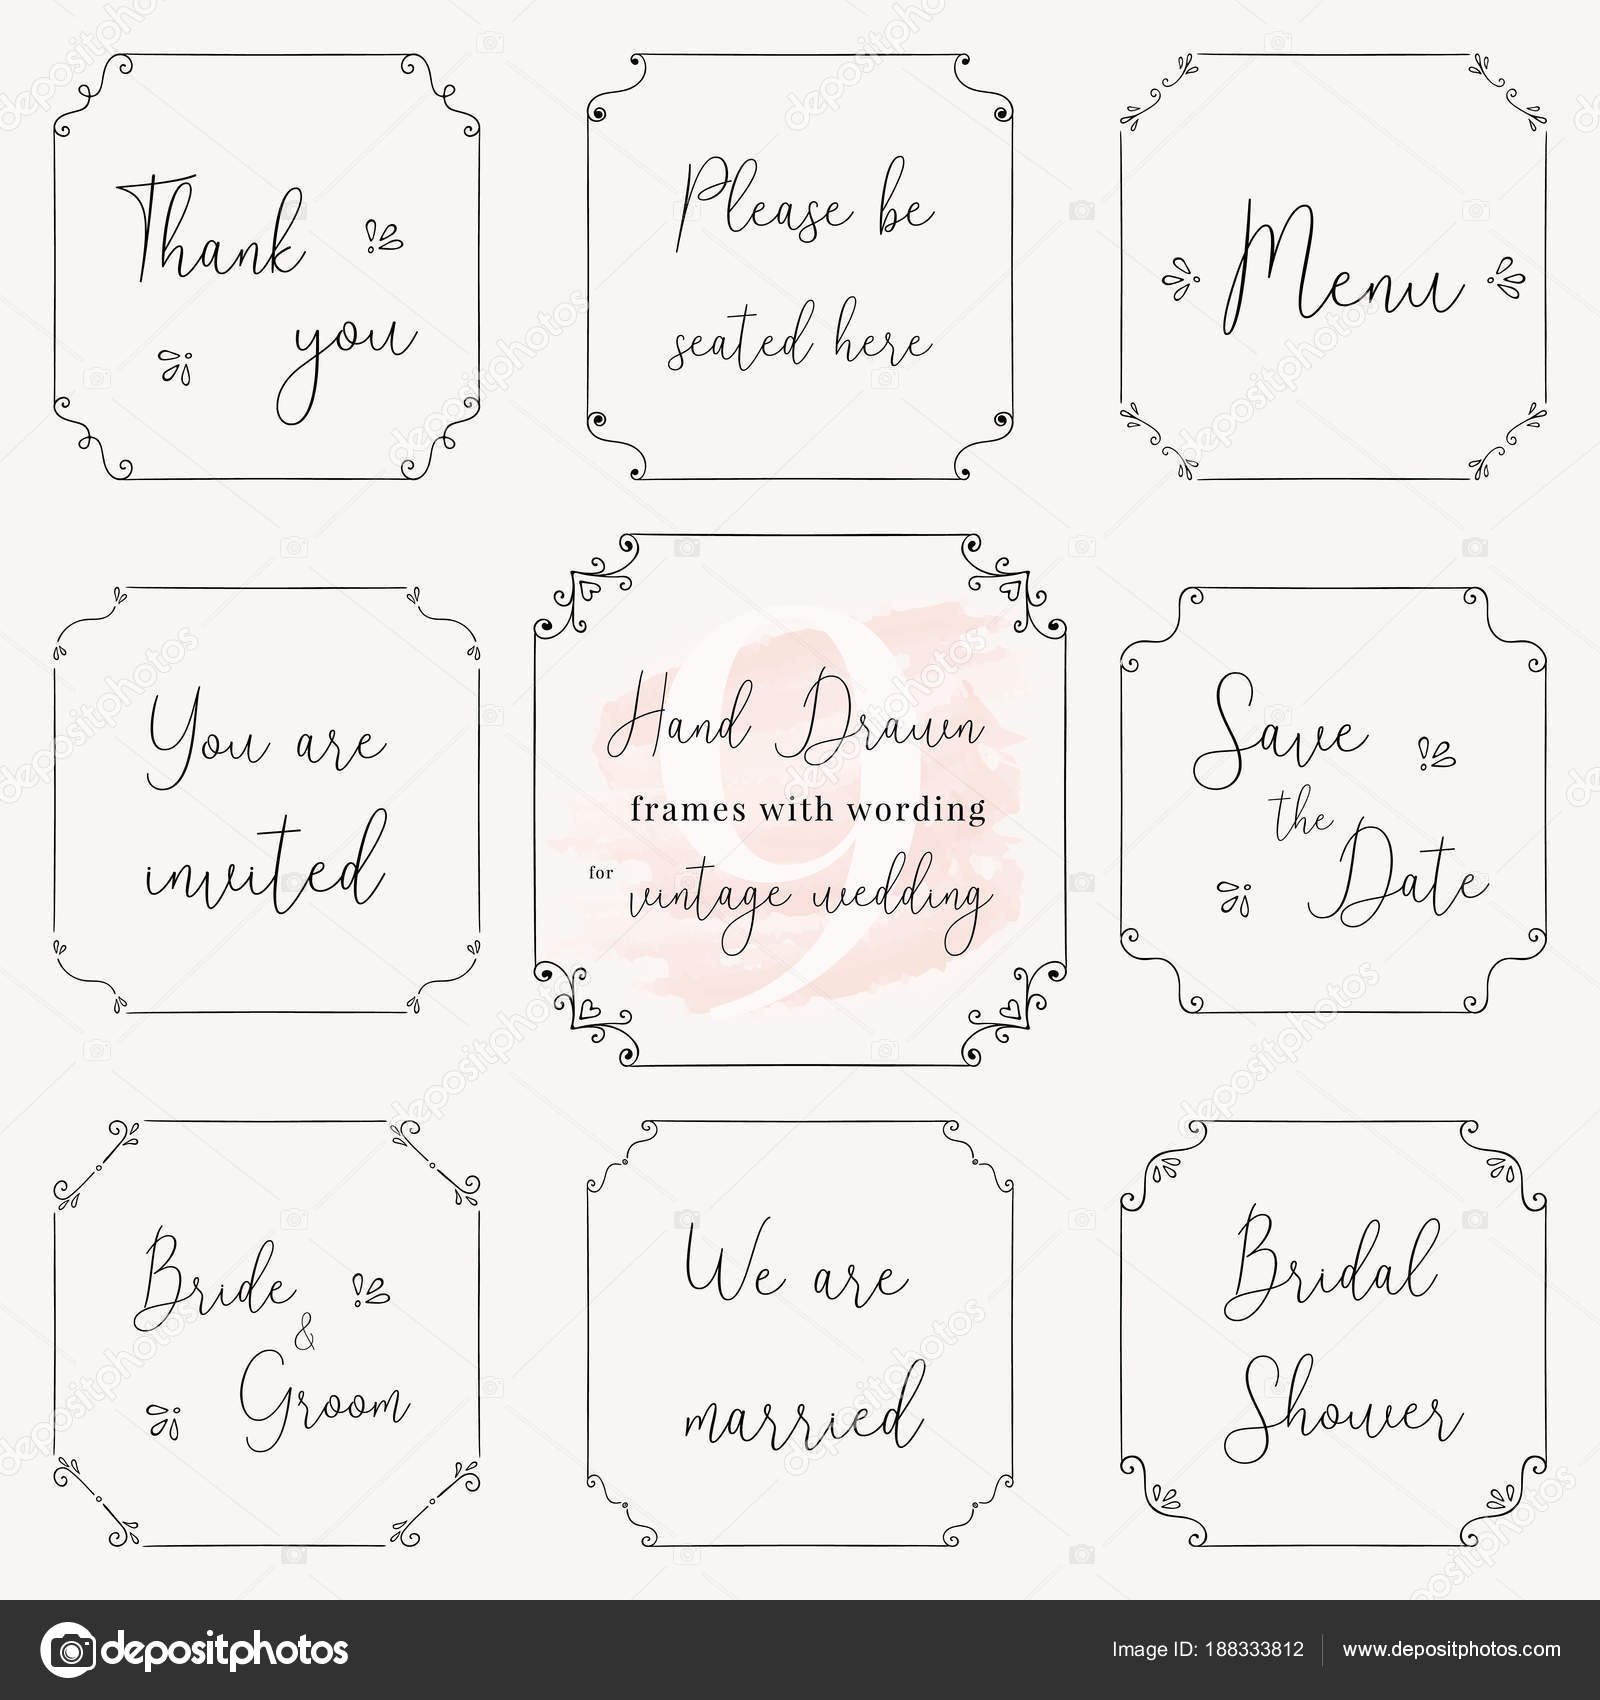 Hand drawn frame doodle vintage wedding frame vector design vintage wedding frame vector design templates vintage frame vector clip art with wedding words stopboris